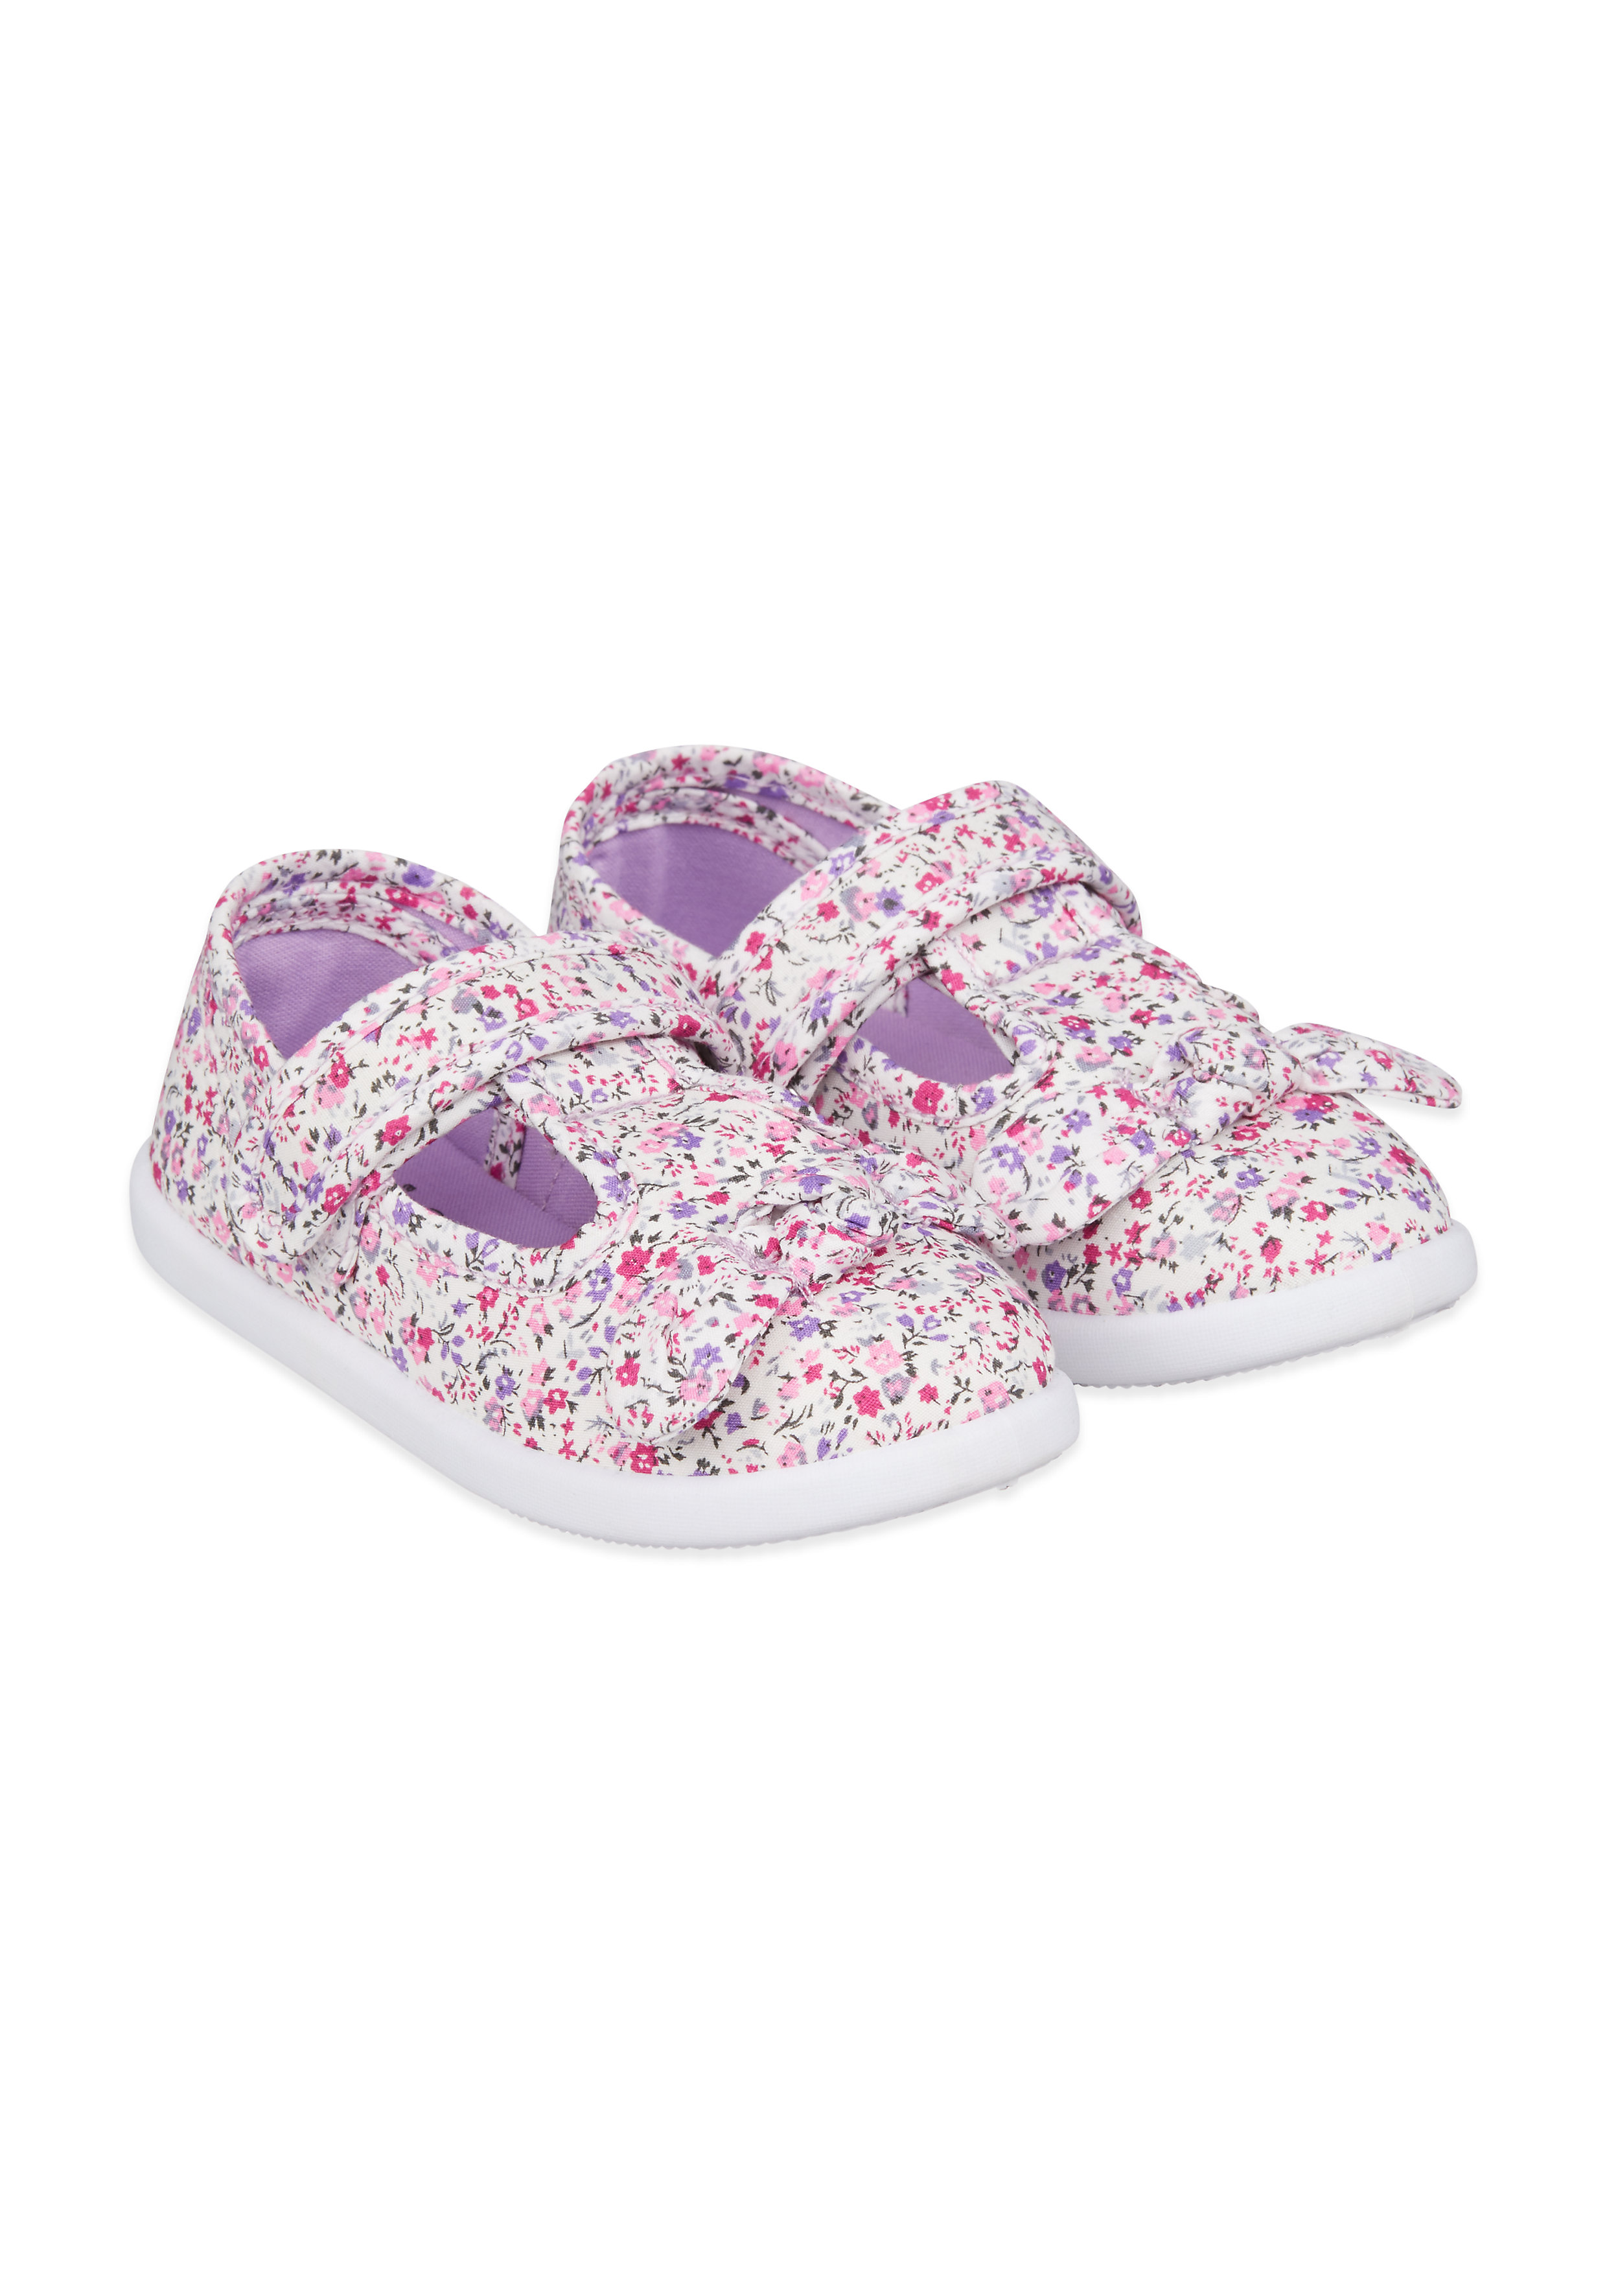 Mothercare   Girls Floral Canvas Shoes - Cream